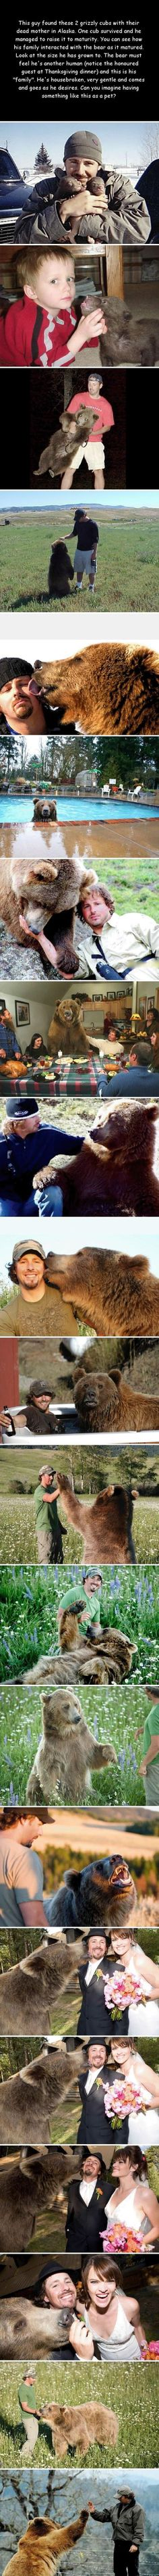 Lolsnaps.com - The story of a man and a bear